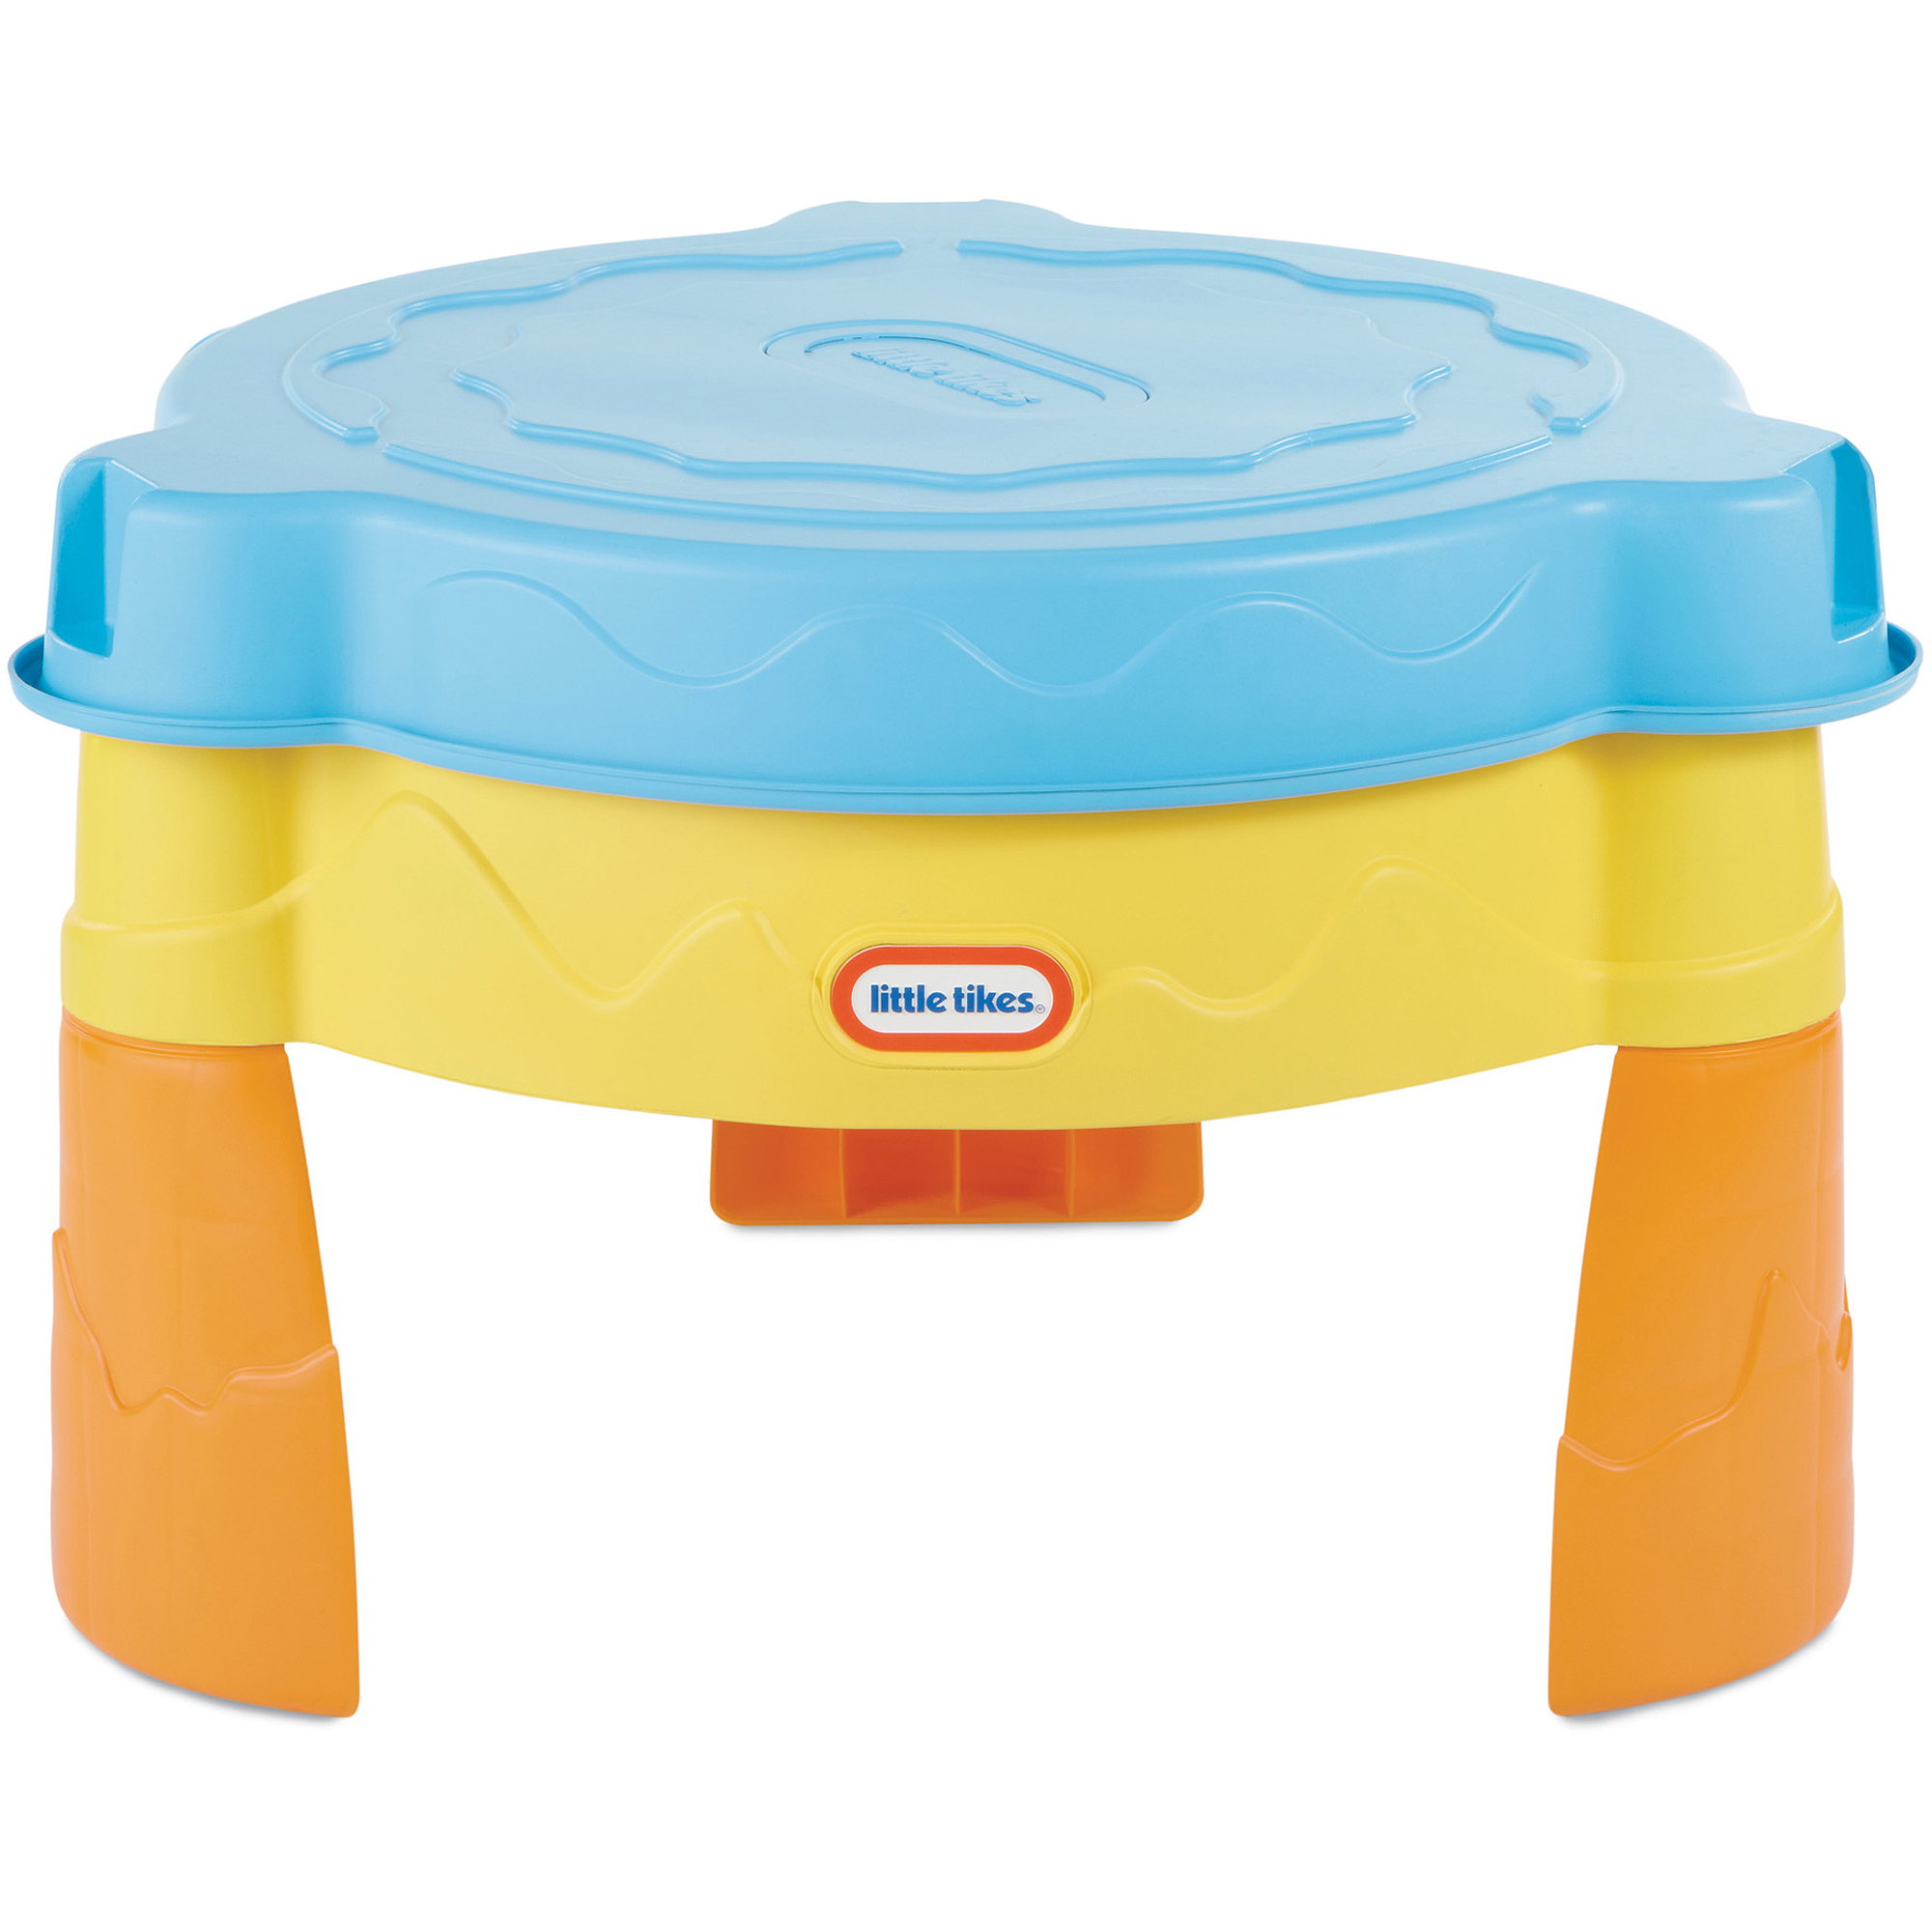 Little Tikes Treasure Hunt Sand and Water Table - Walmart.com